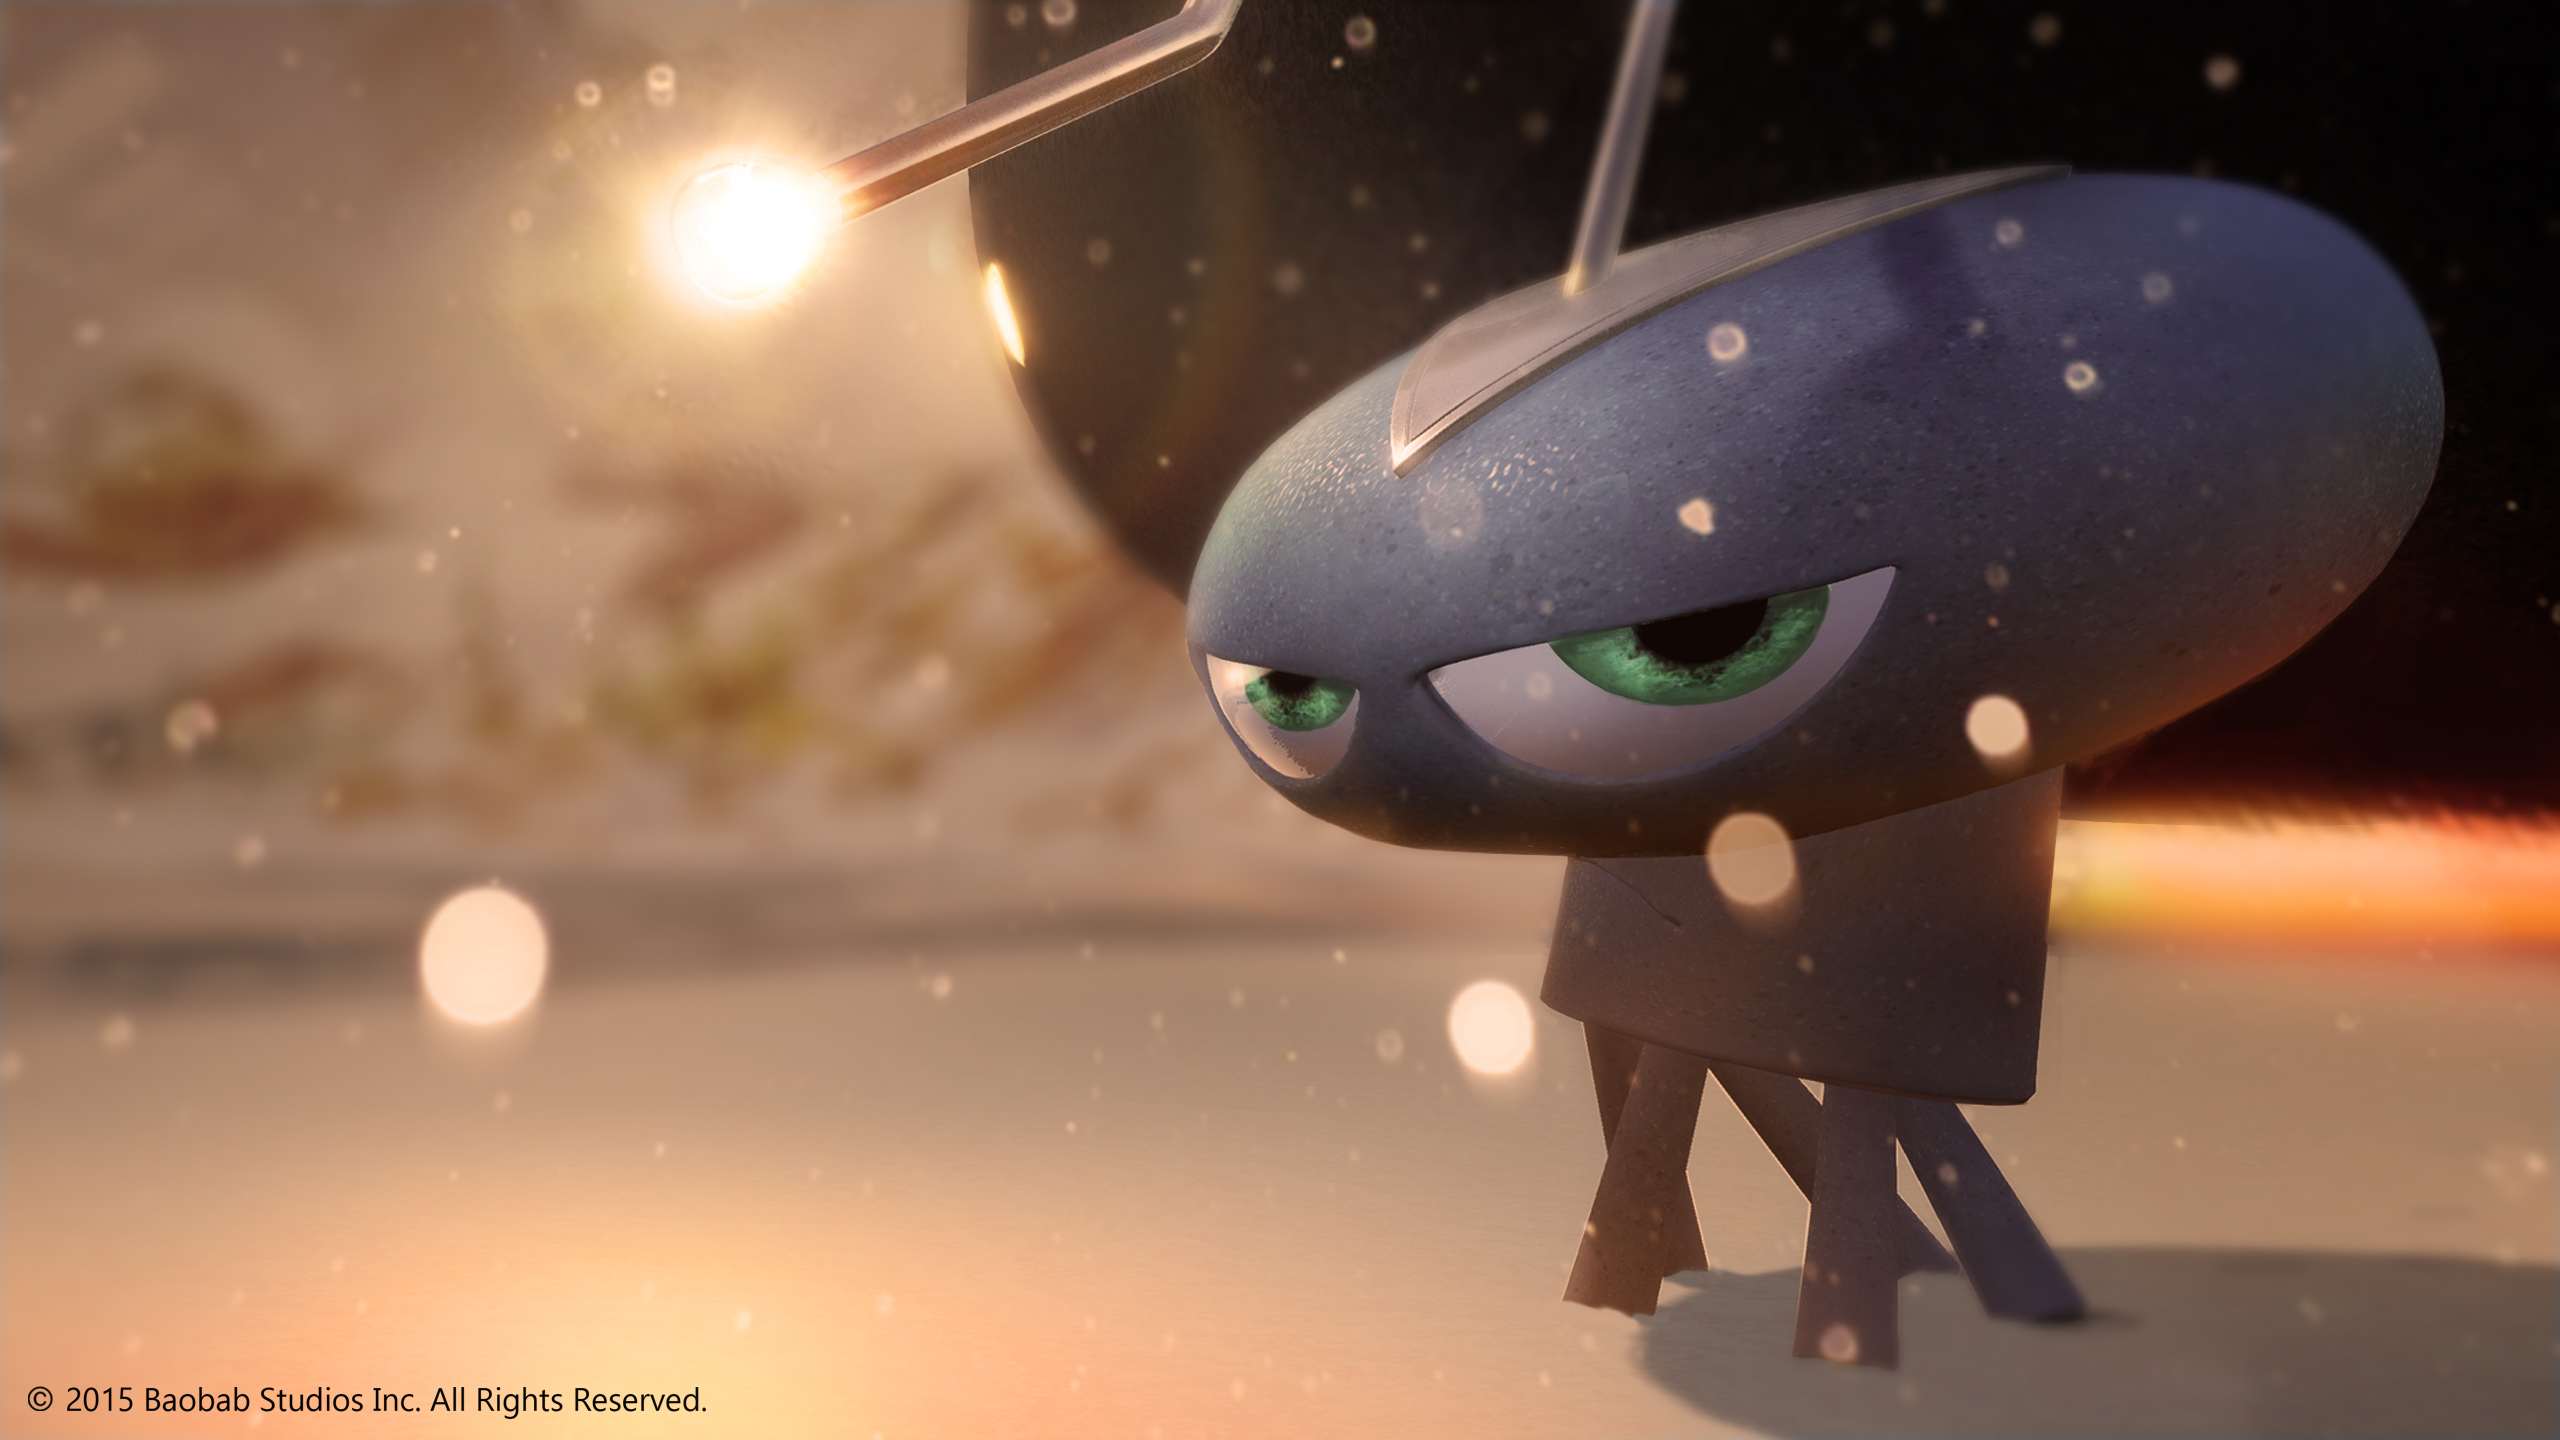 """Boabab Studios has released its first virtual reality short, """"Invasion,"""" on Samsung Gear VR."""